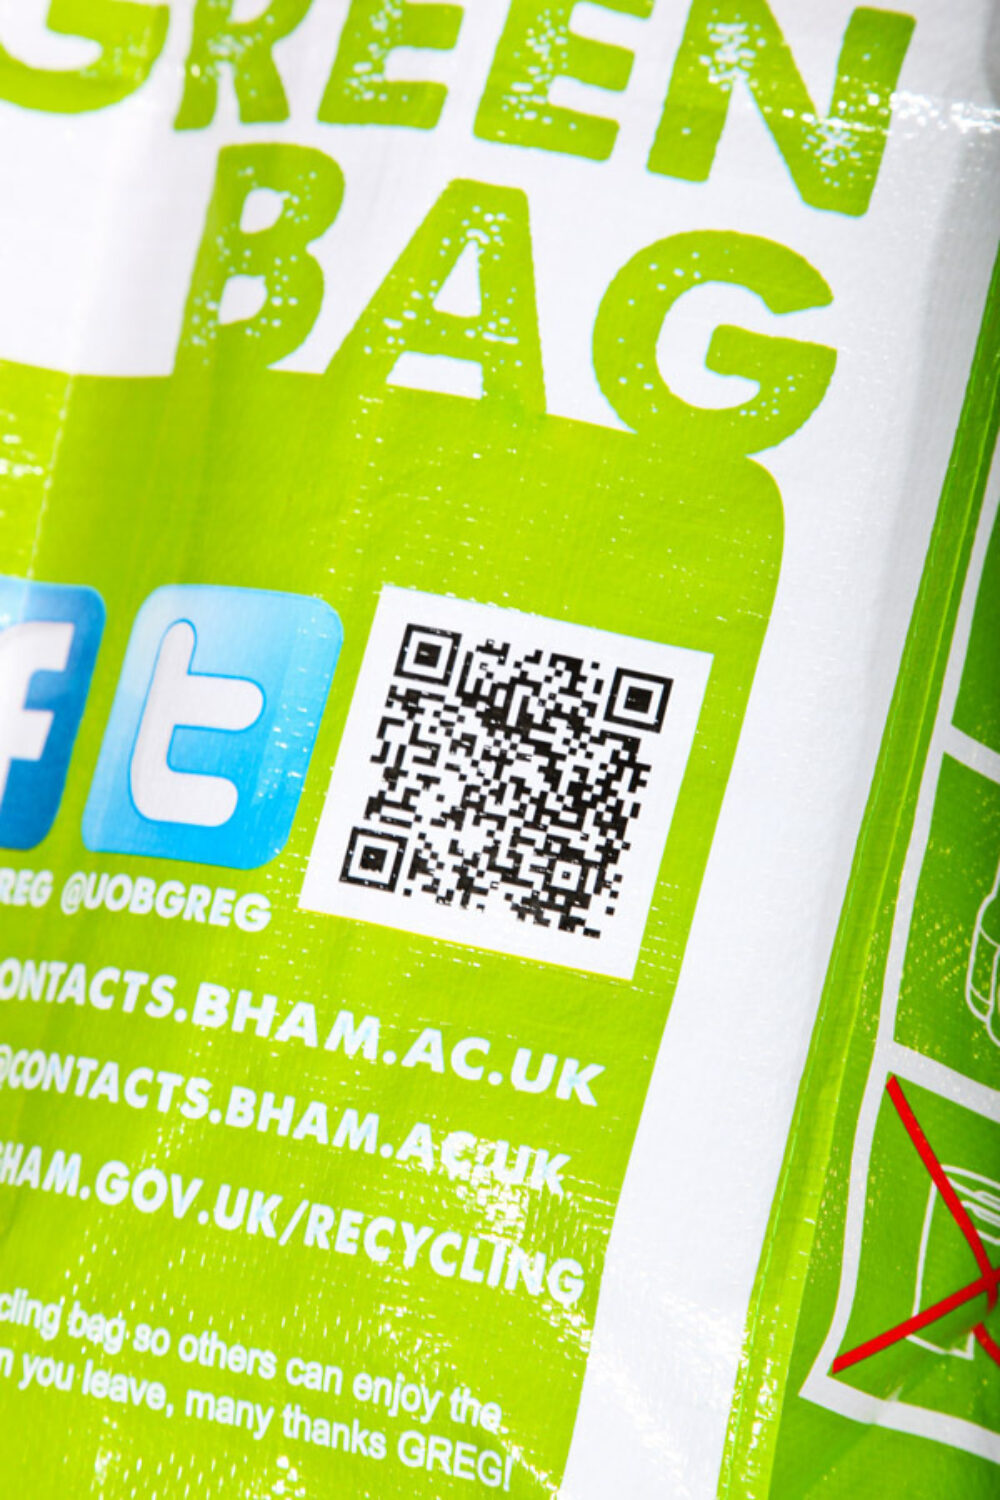 Using QR Codes in Marketing Campaigns